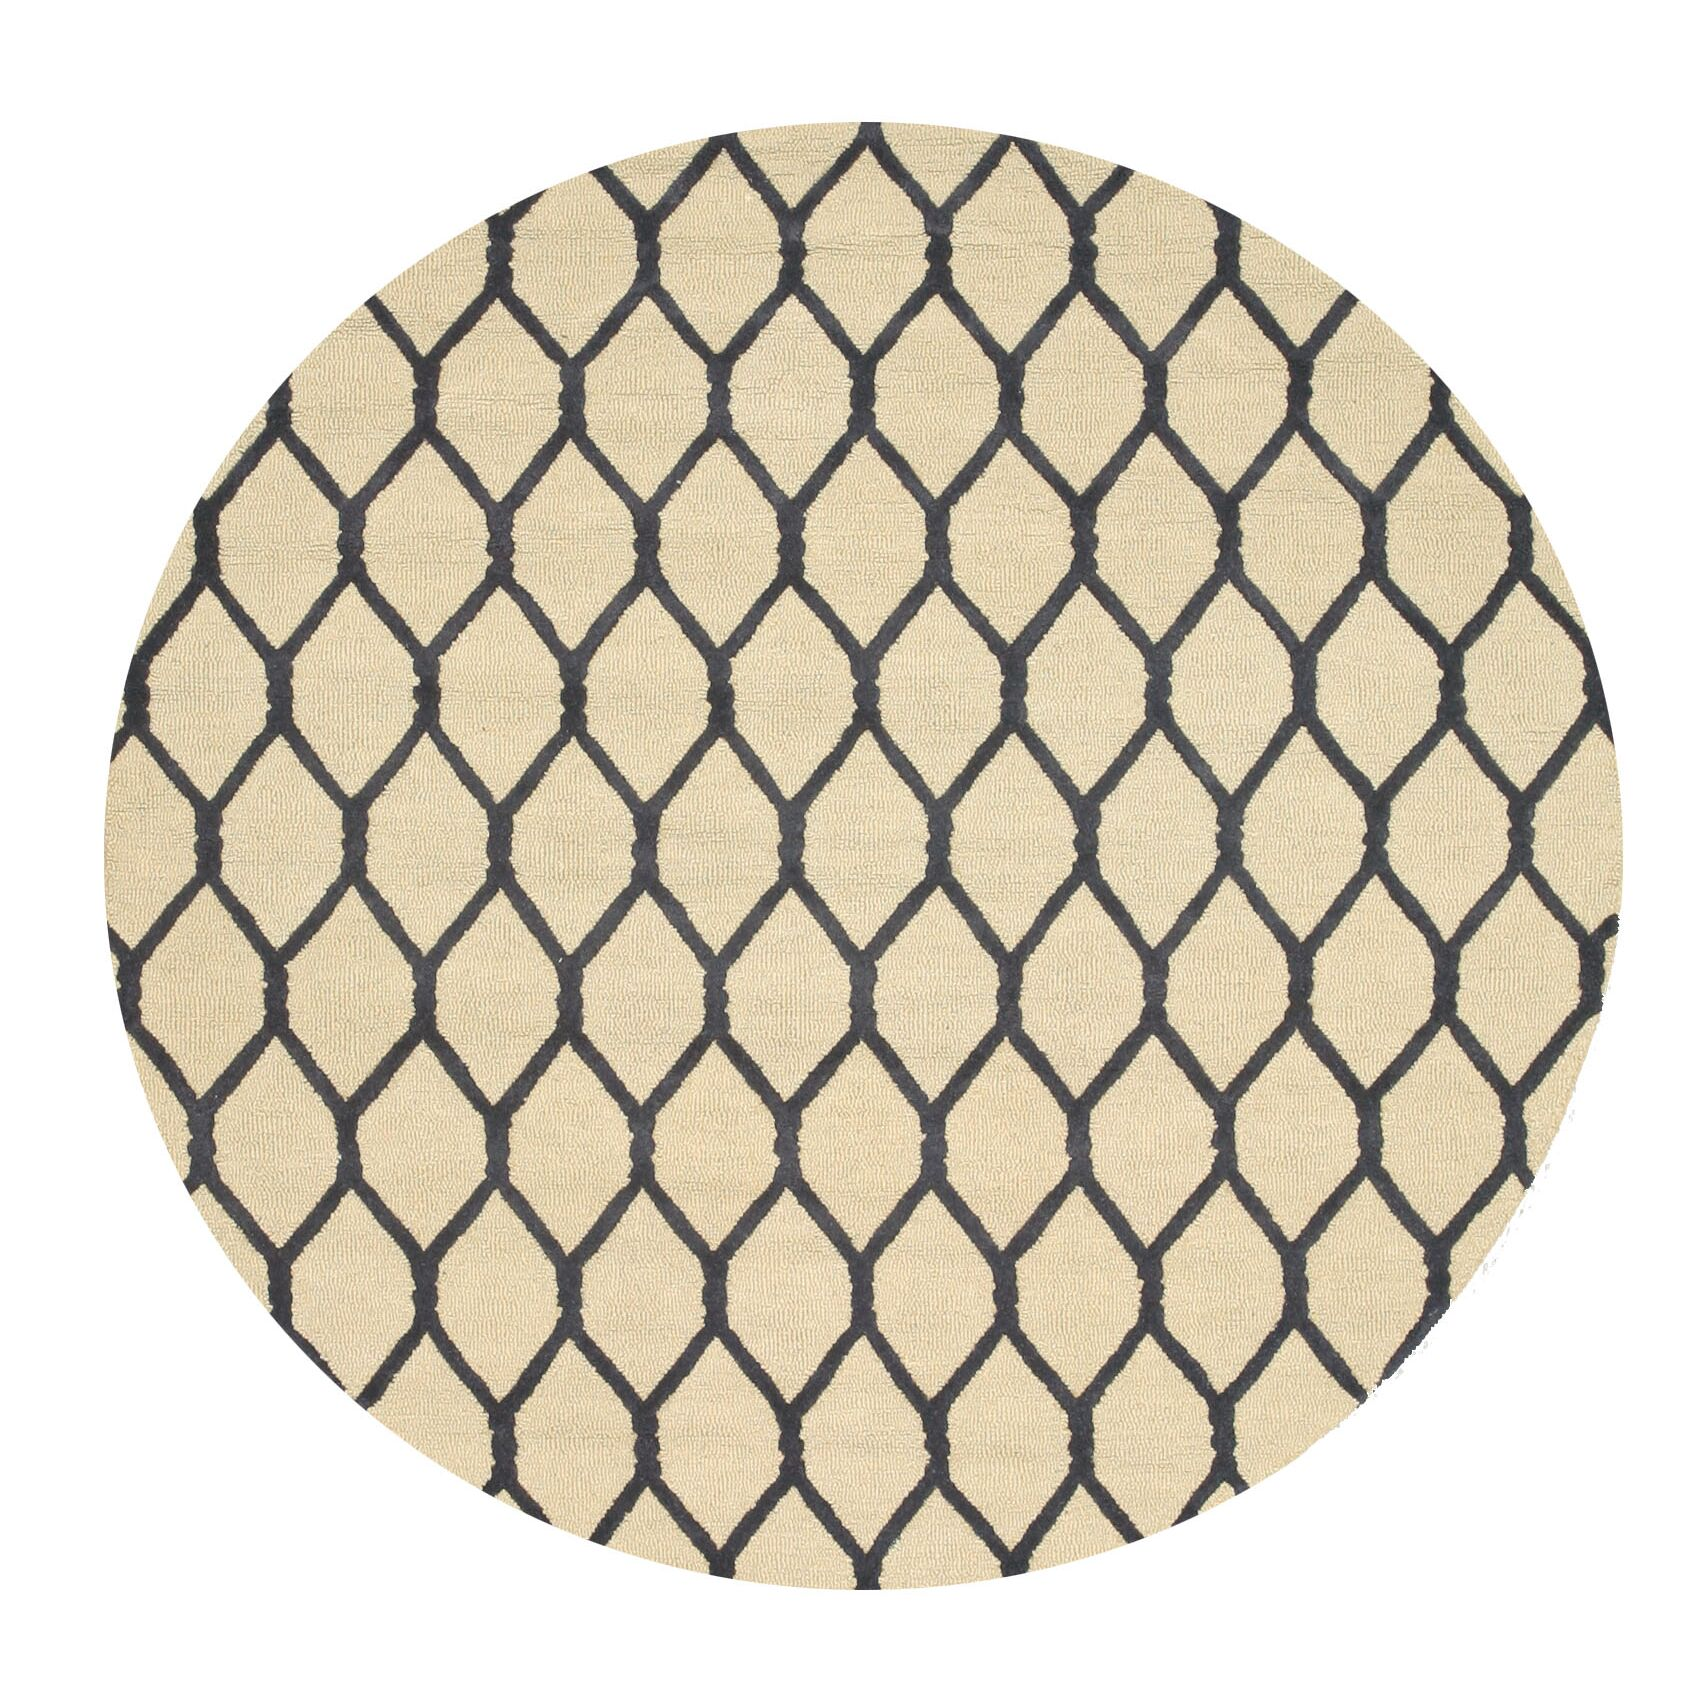 Hand-Tufted Ivory Area Rug Rug Size: Round 4'